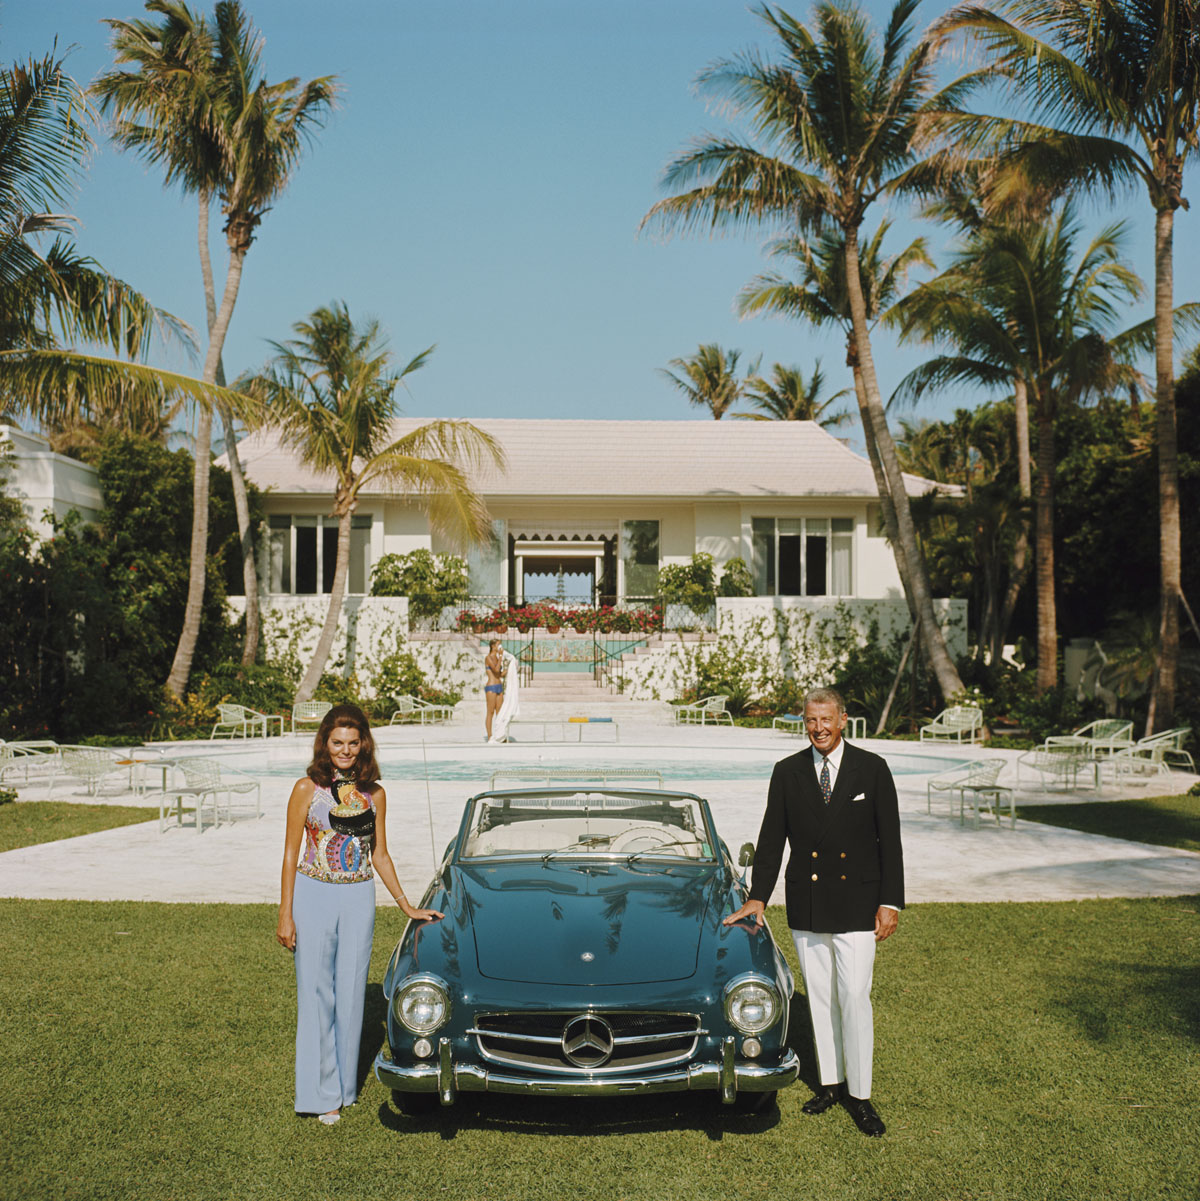 May 1970: Alvin and Lilly Fuller outside their new home in Palm Beach, Florida, pose with their fashionable European sports car, the Mercedes 190SL. (Photo by Slim Aarons/Getty Images)